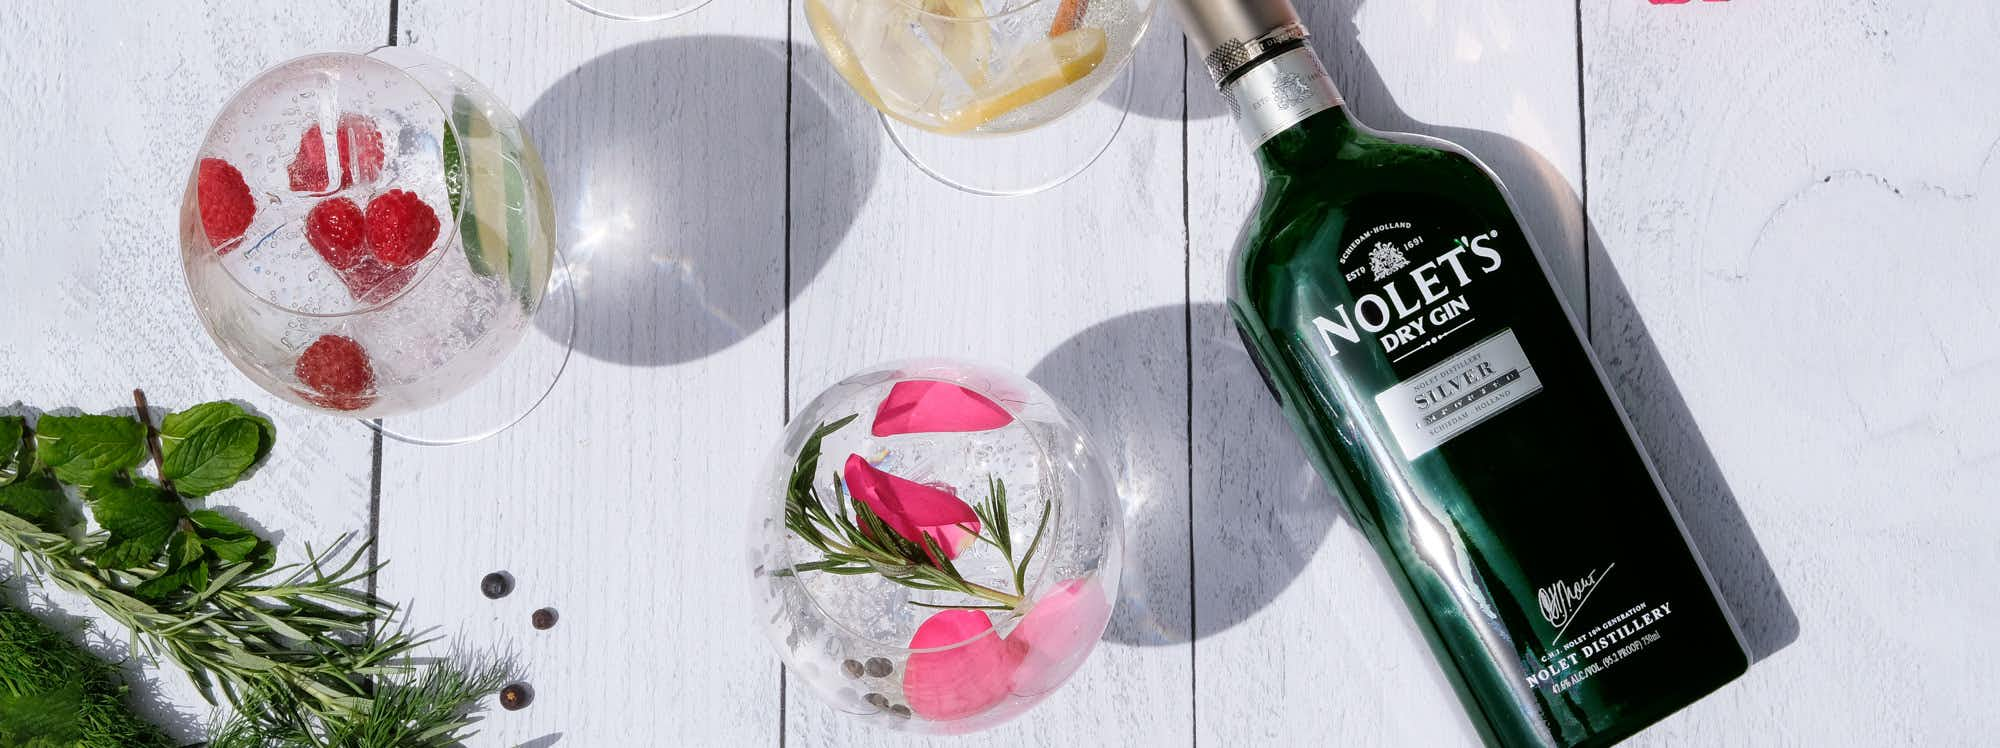 NOLET'S Silver Gin & Tonic